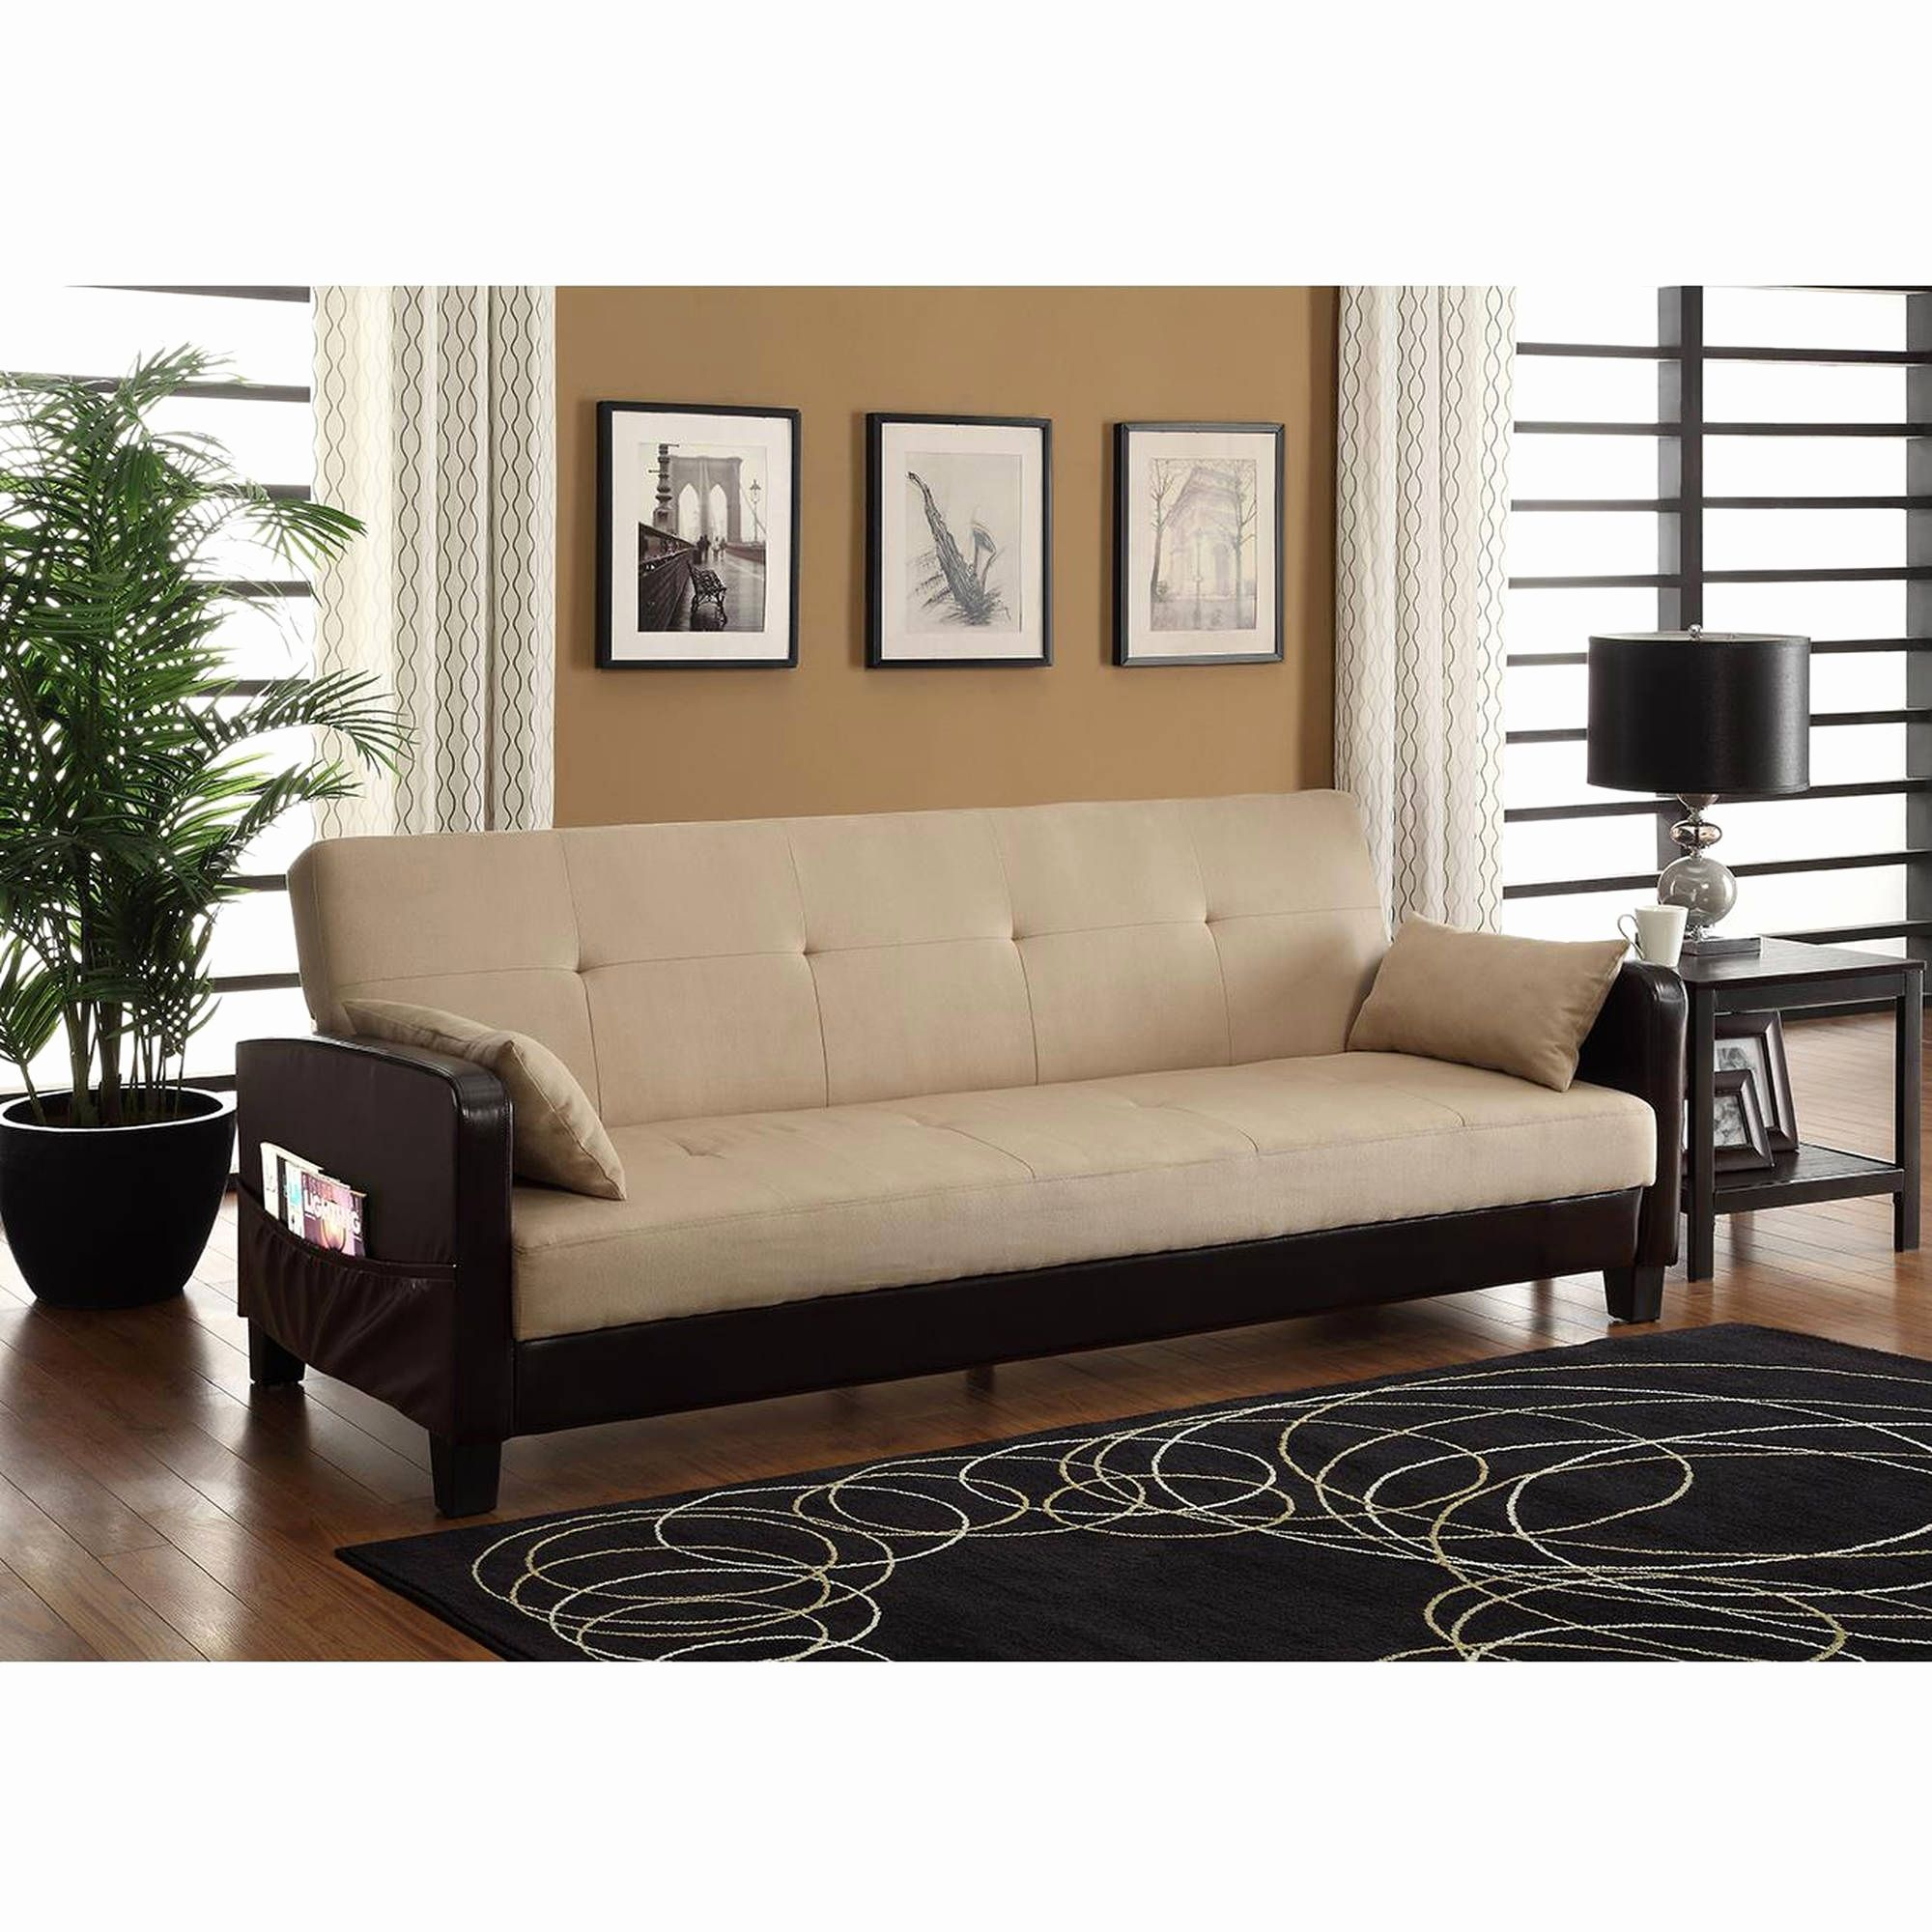 sofas ashley sofa couch loveseat best comfortable furniture standard sleeper bed